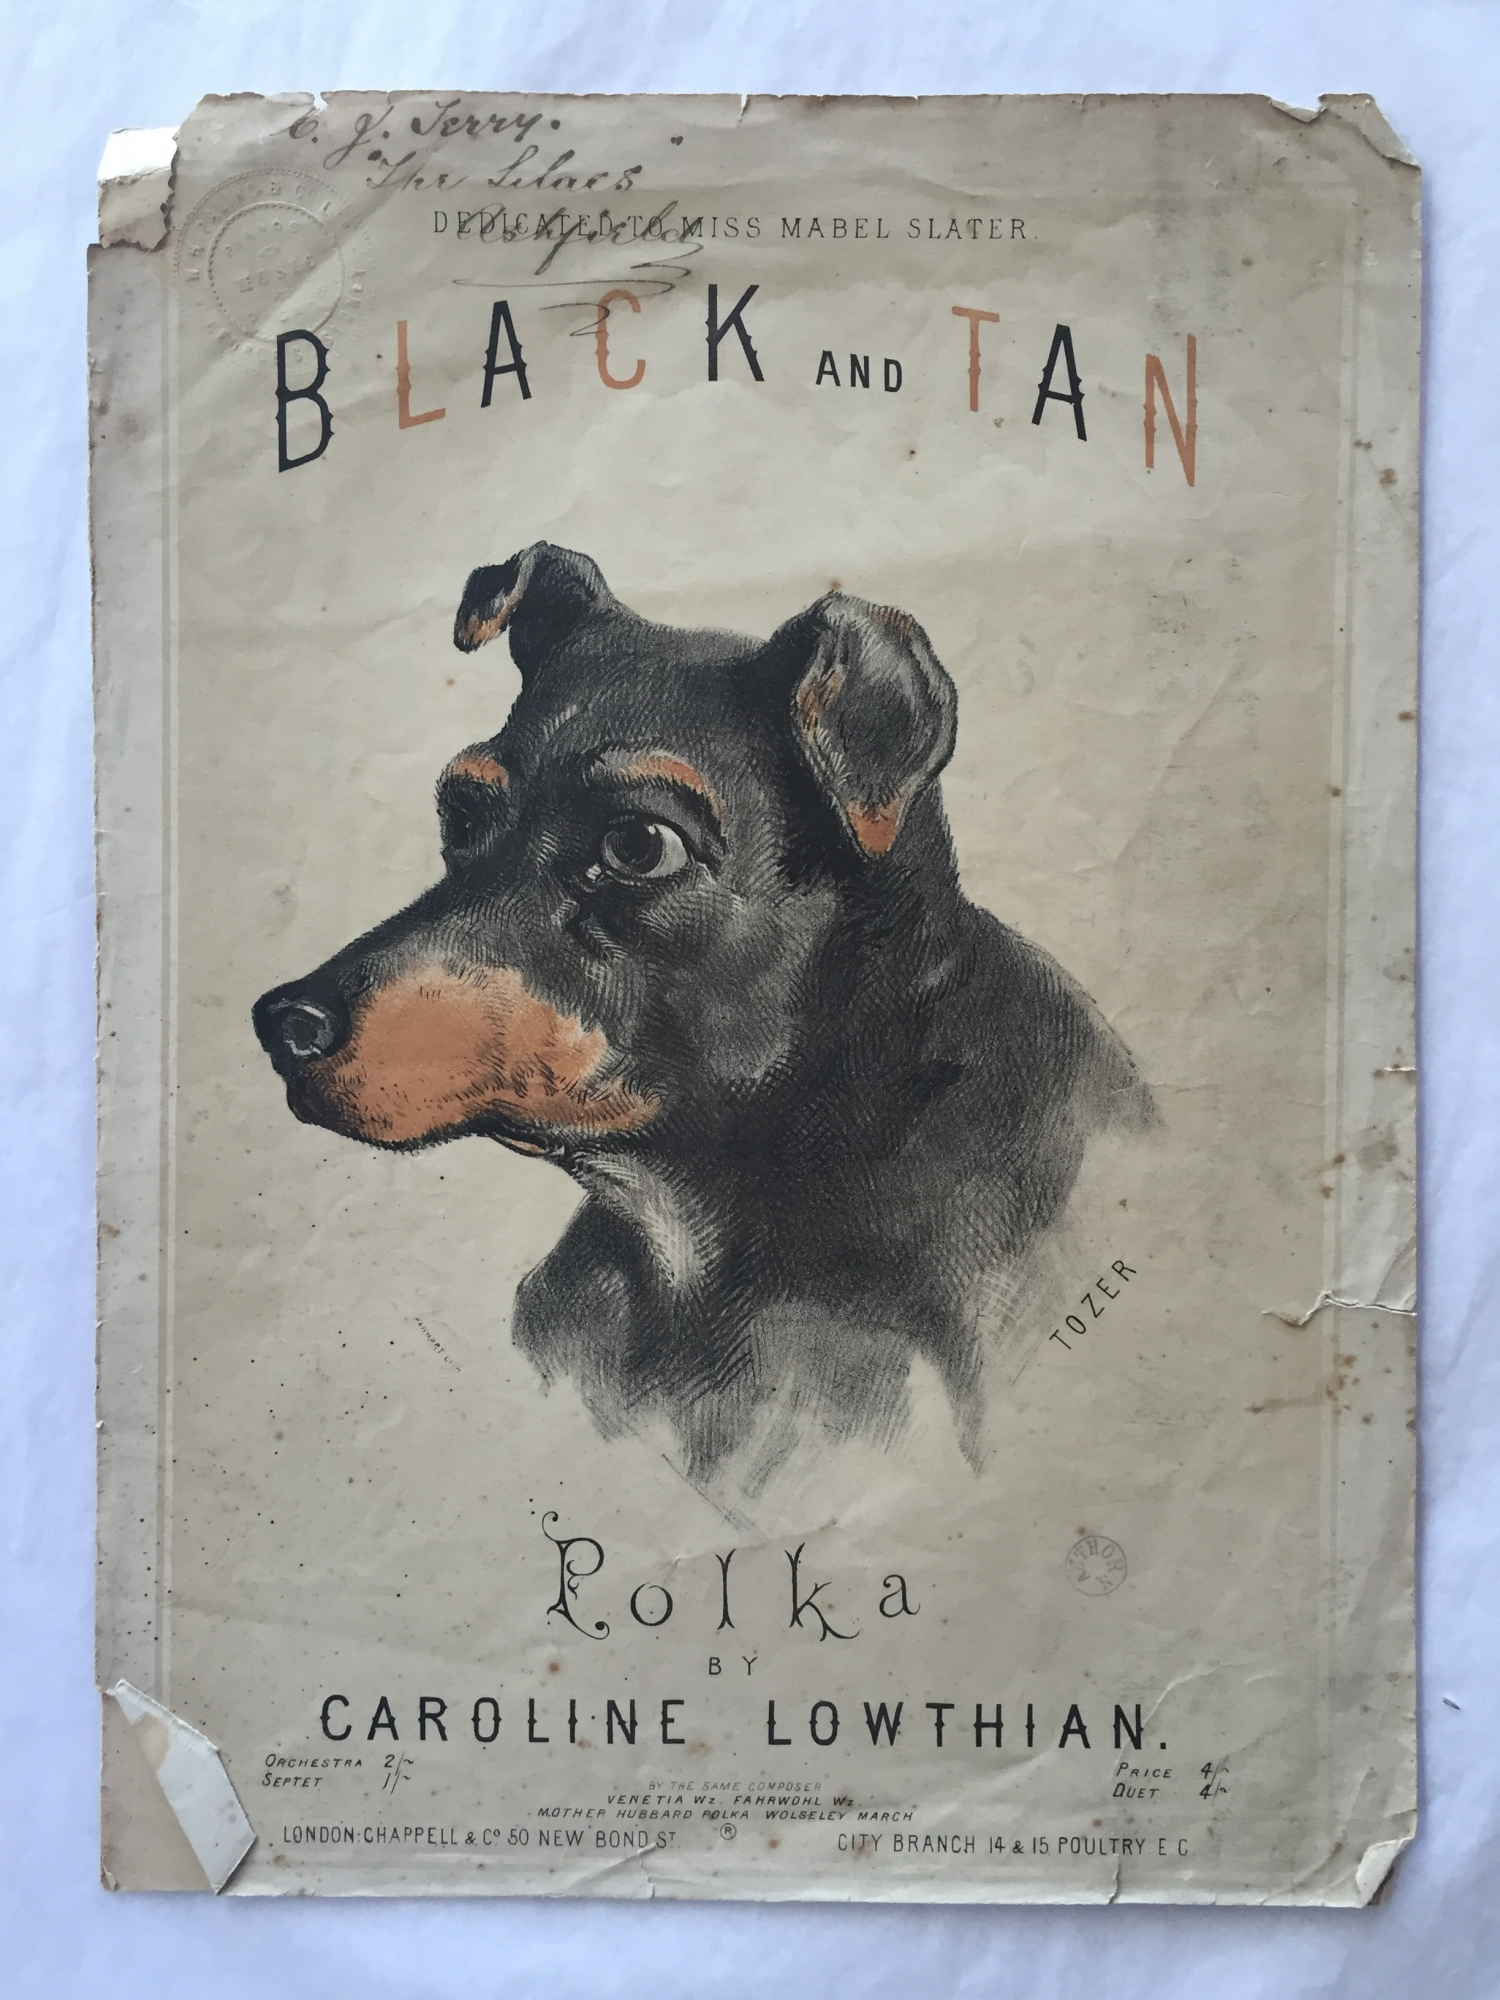 Illustration of black and tan dog's head with name of musical composition.